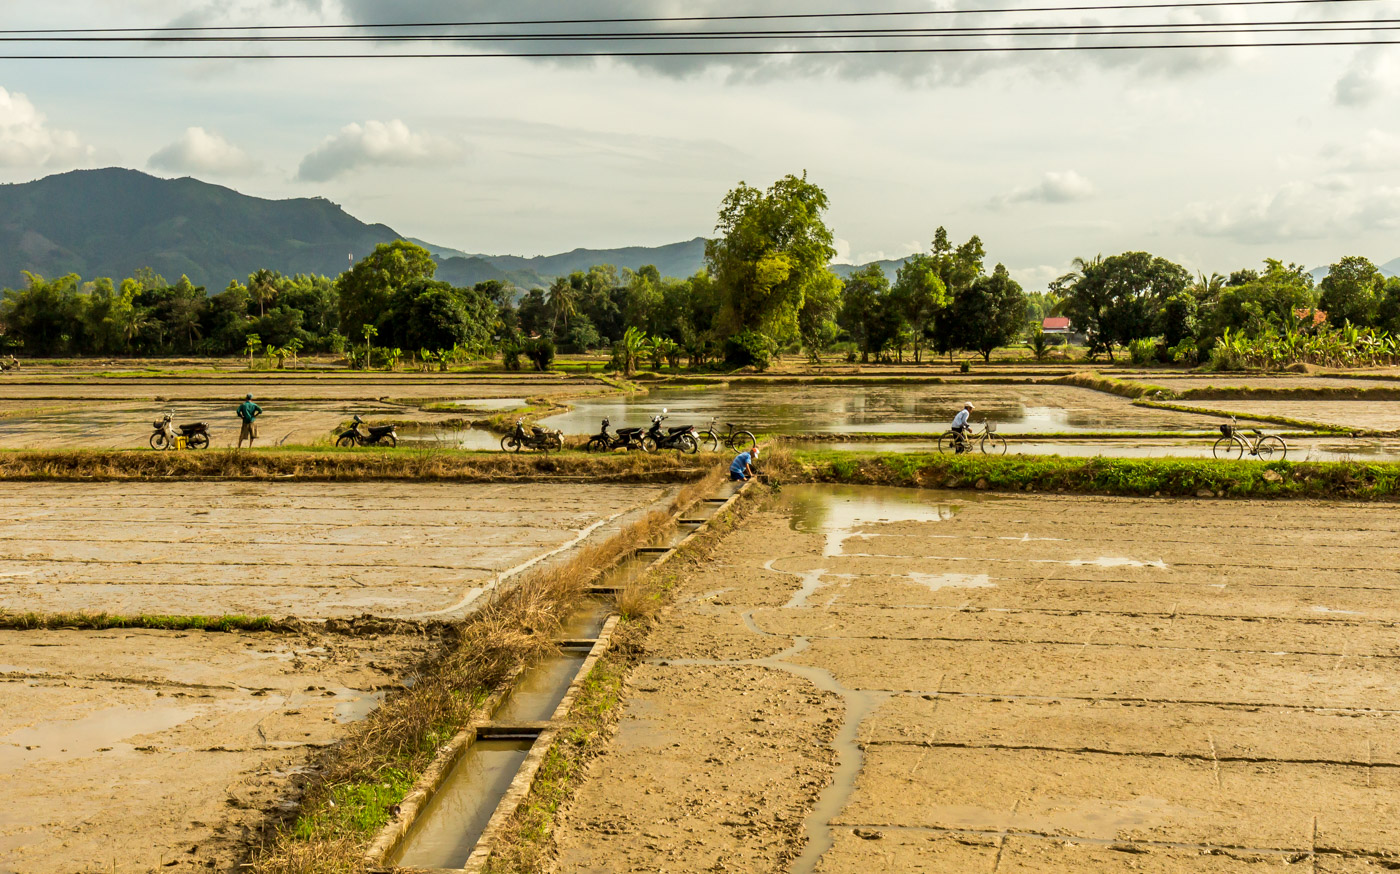 The final approach to Nha Trang was on flat land, given over to fields.